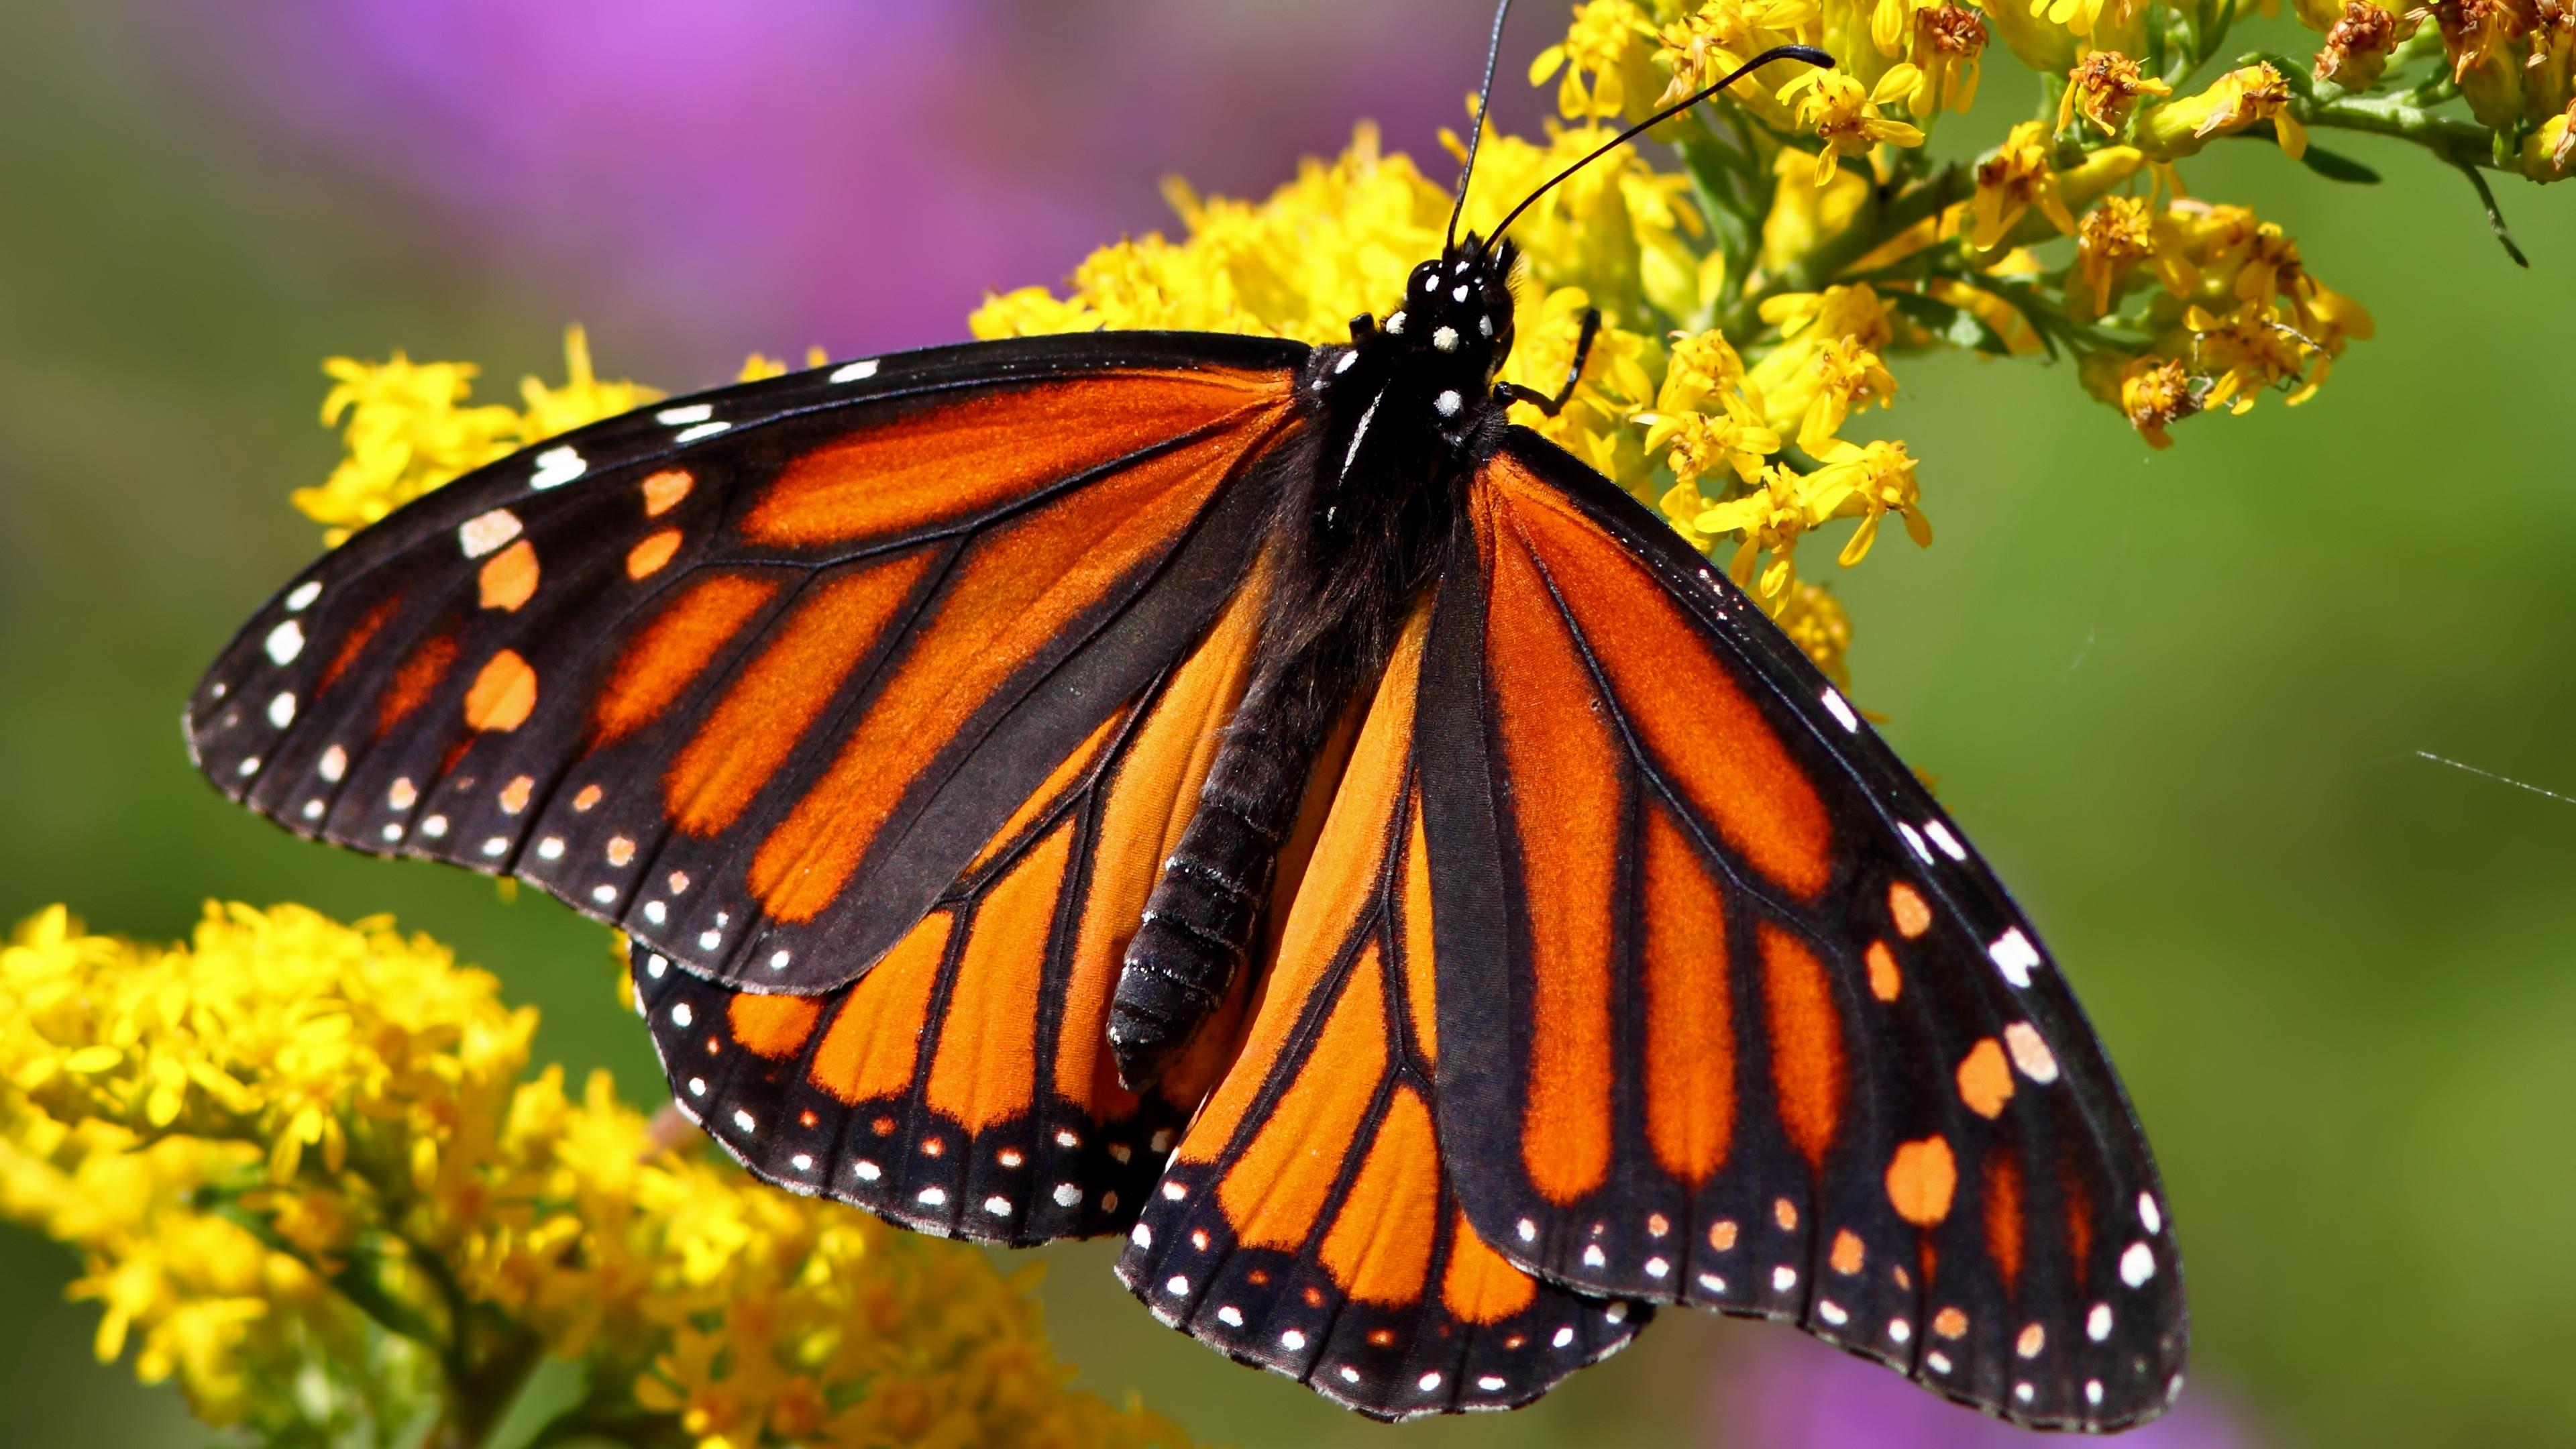 Monarch butterfly - Macro photography wallpaper